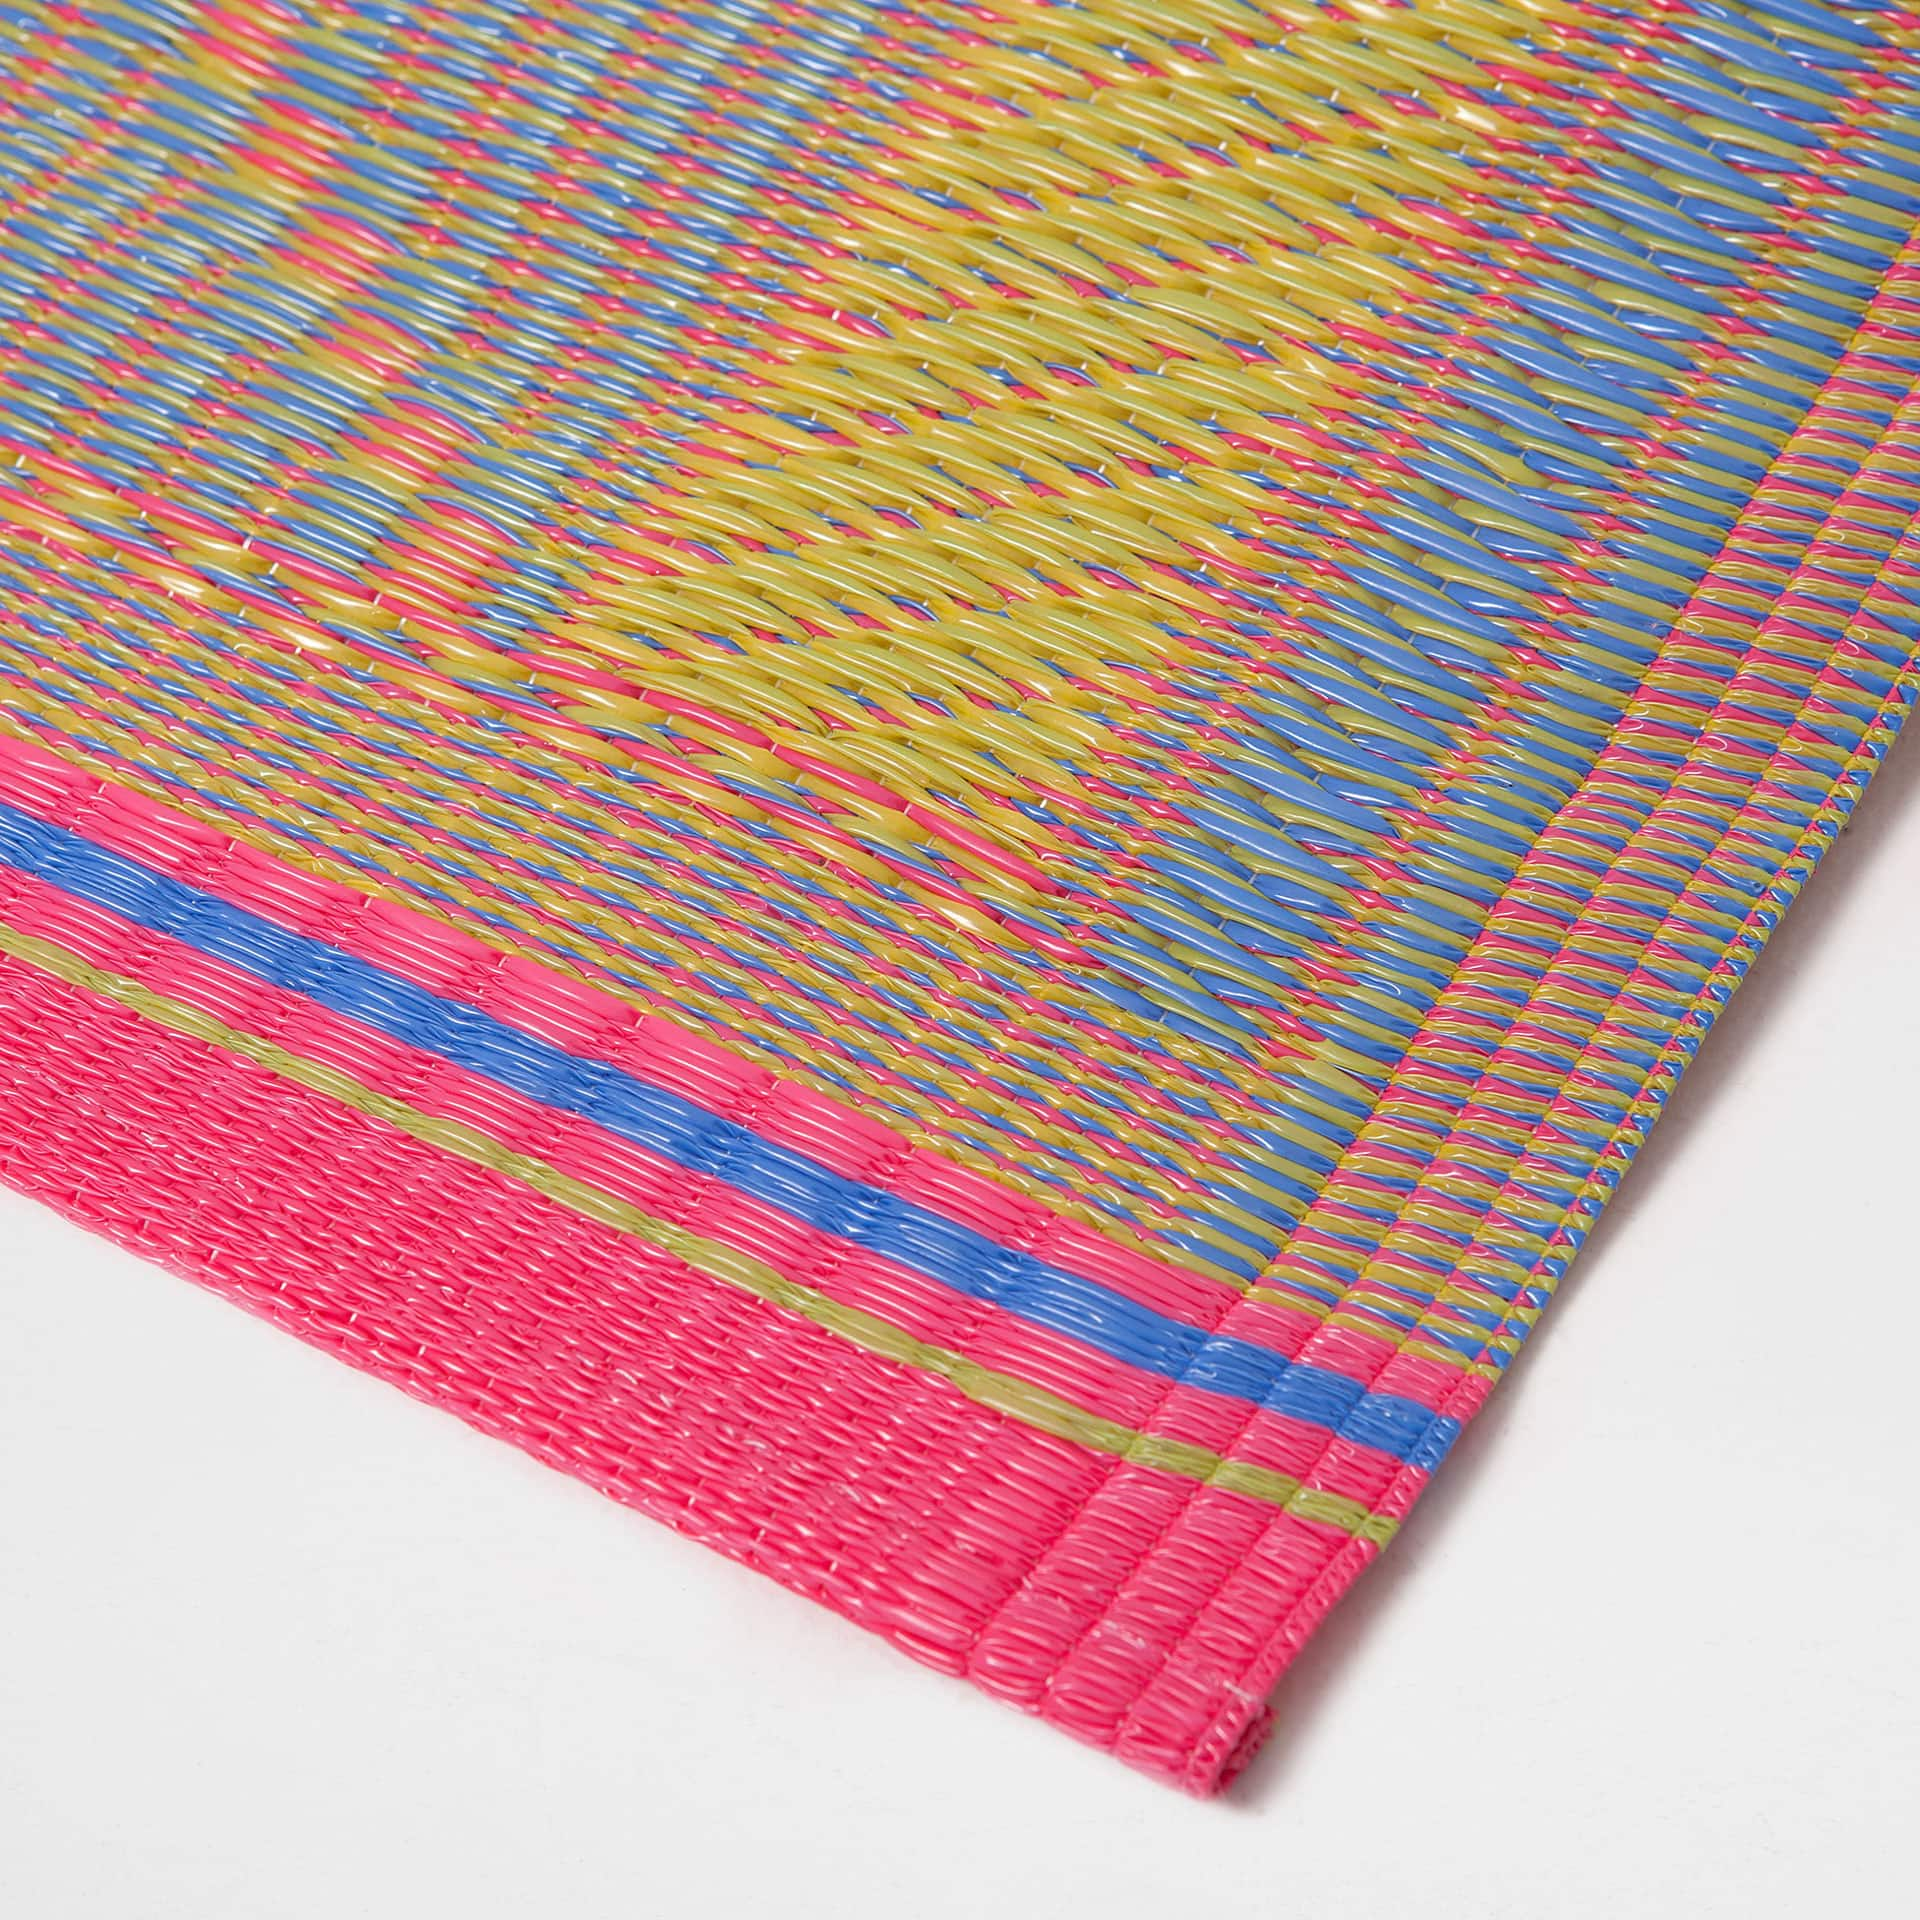 multicoloured striped rug  rugs  decoration  zara home united  -  image  of the product multicoloured striped rug